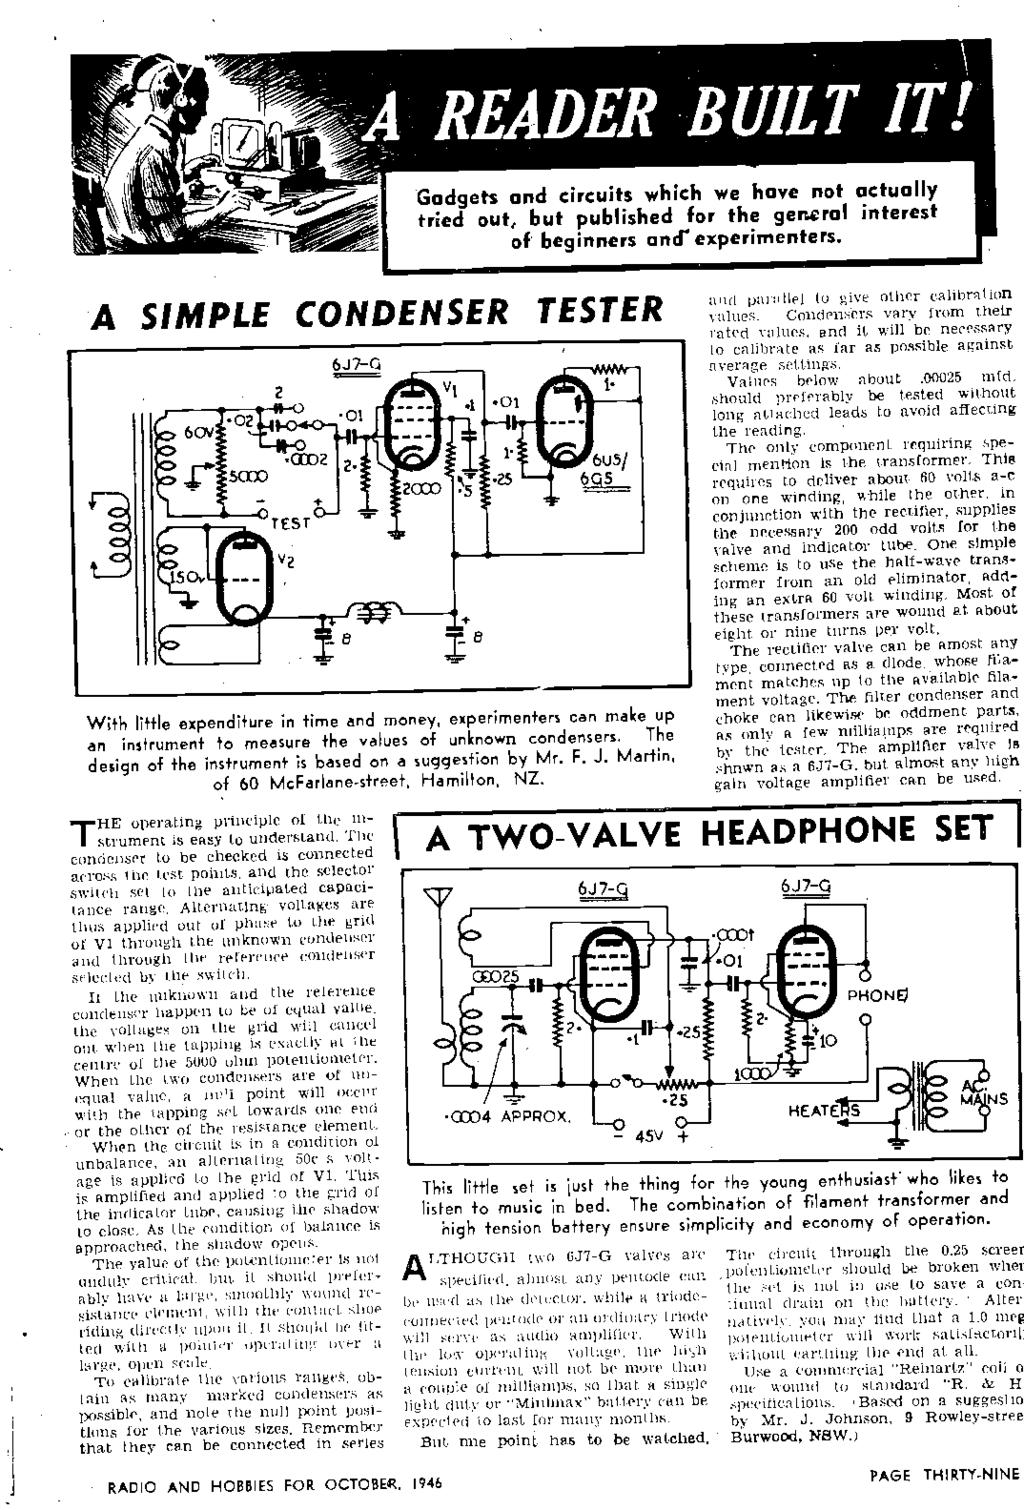 Hobb A Crystal Set For Beginners Radio Rocket Era Story On Pogo 3 Timer With Alarm Circuit P Marian 4060 Timers To Gadgets And Circuits Which We Have Not Actually Tried Out But Published The